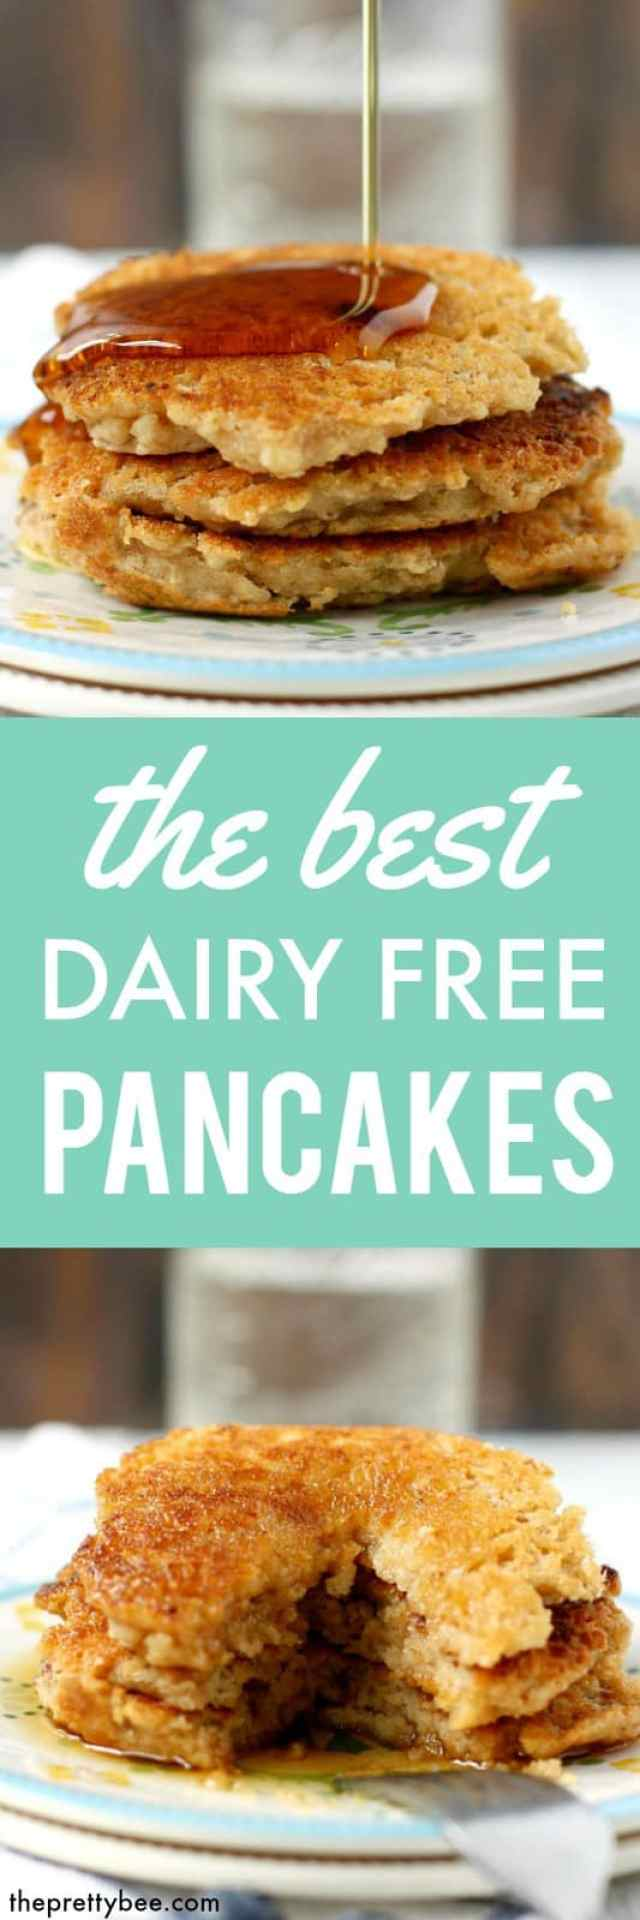 Fluffy and light dairy free pancake recipe